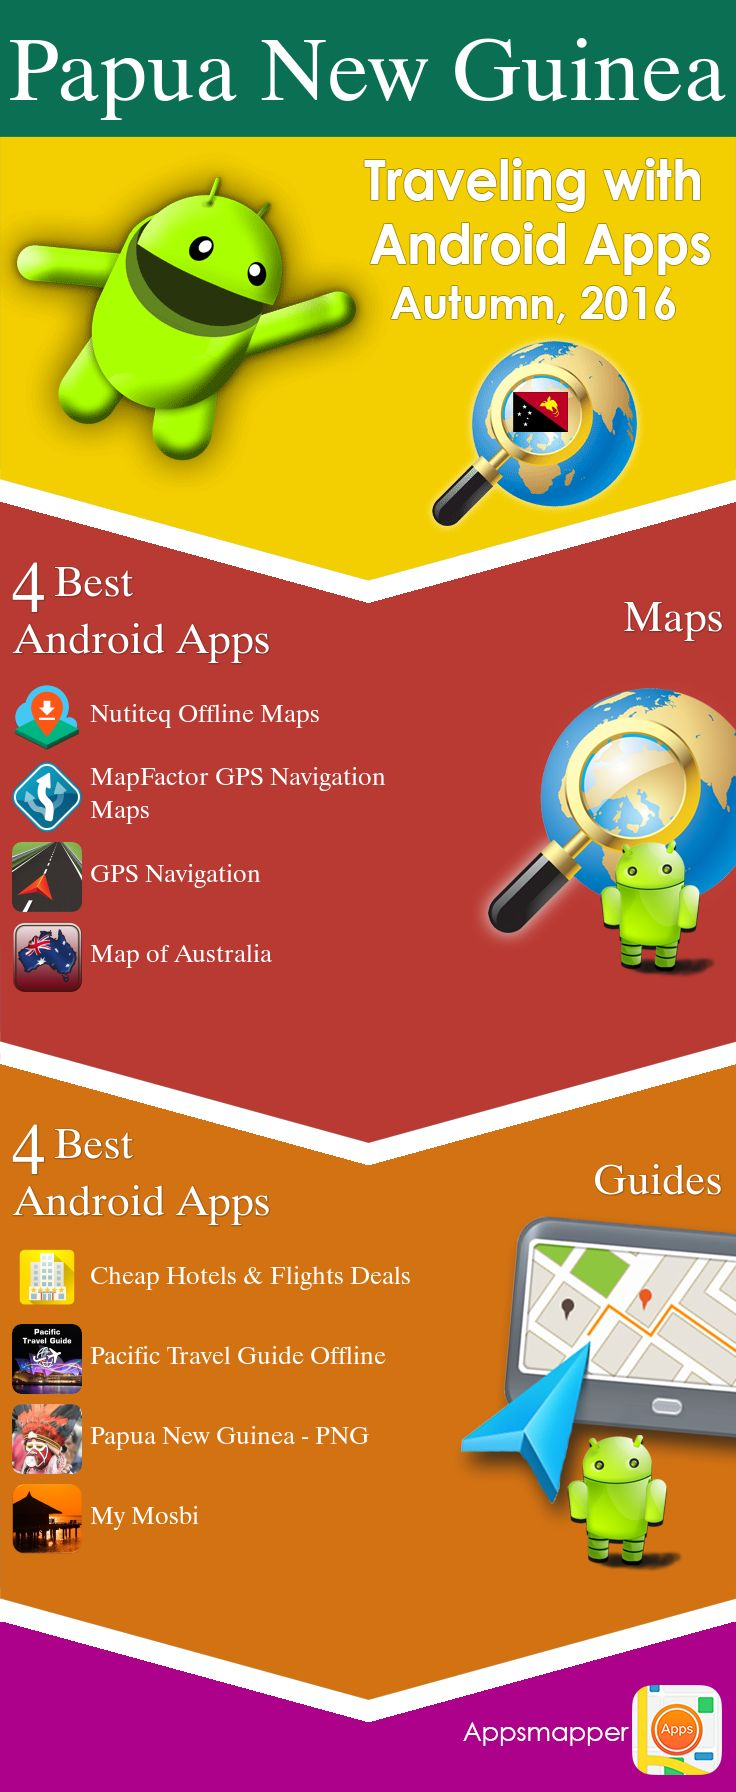 Papua New Guinea Android apps: Travel Guides, Maps, Transportation, Biking, Museums, Parking, Sport and apps for Students.